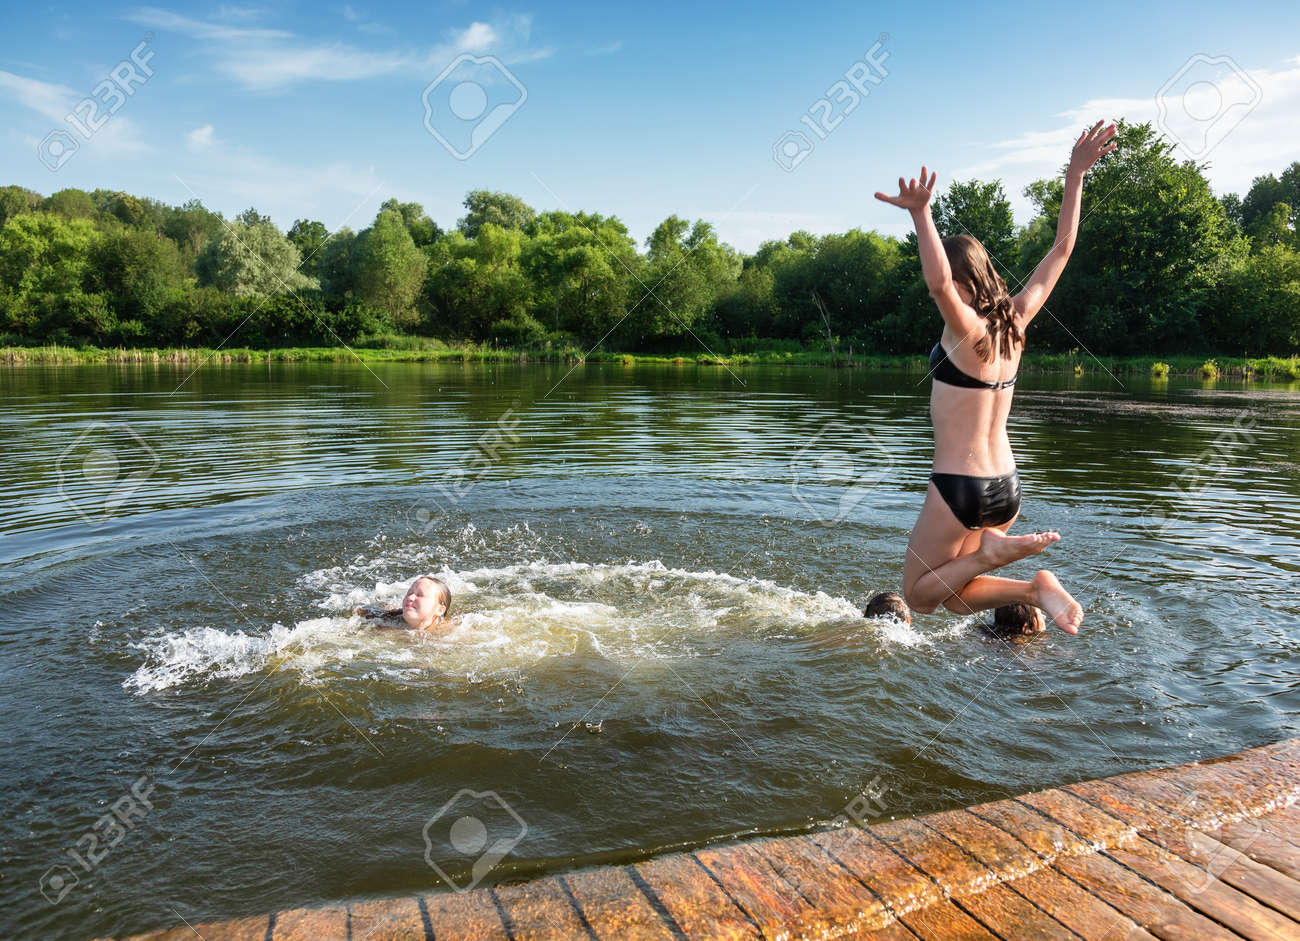 Happy little girls having fun playing in a lake jumping into water during summer holidays - 167176302